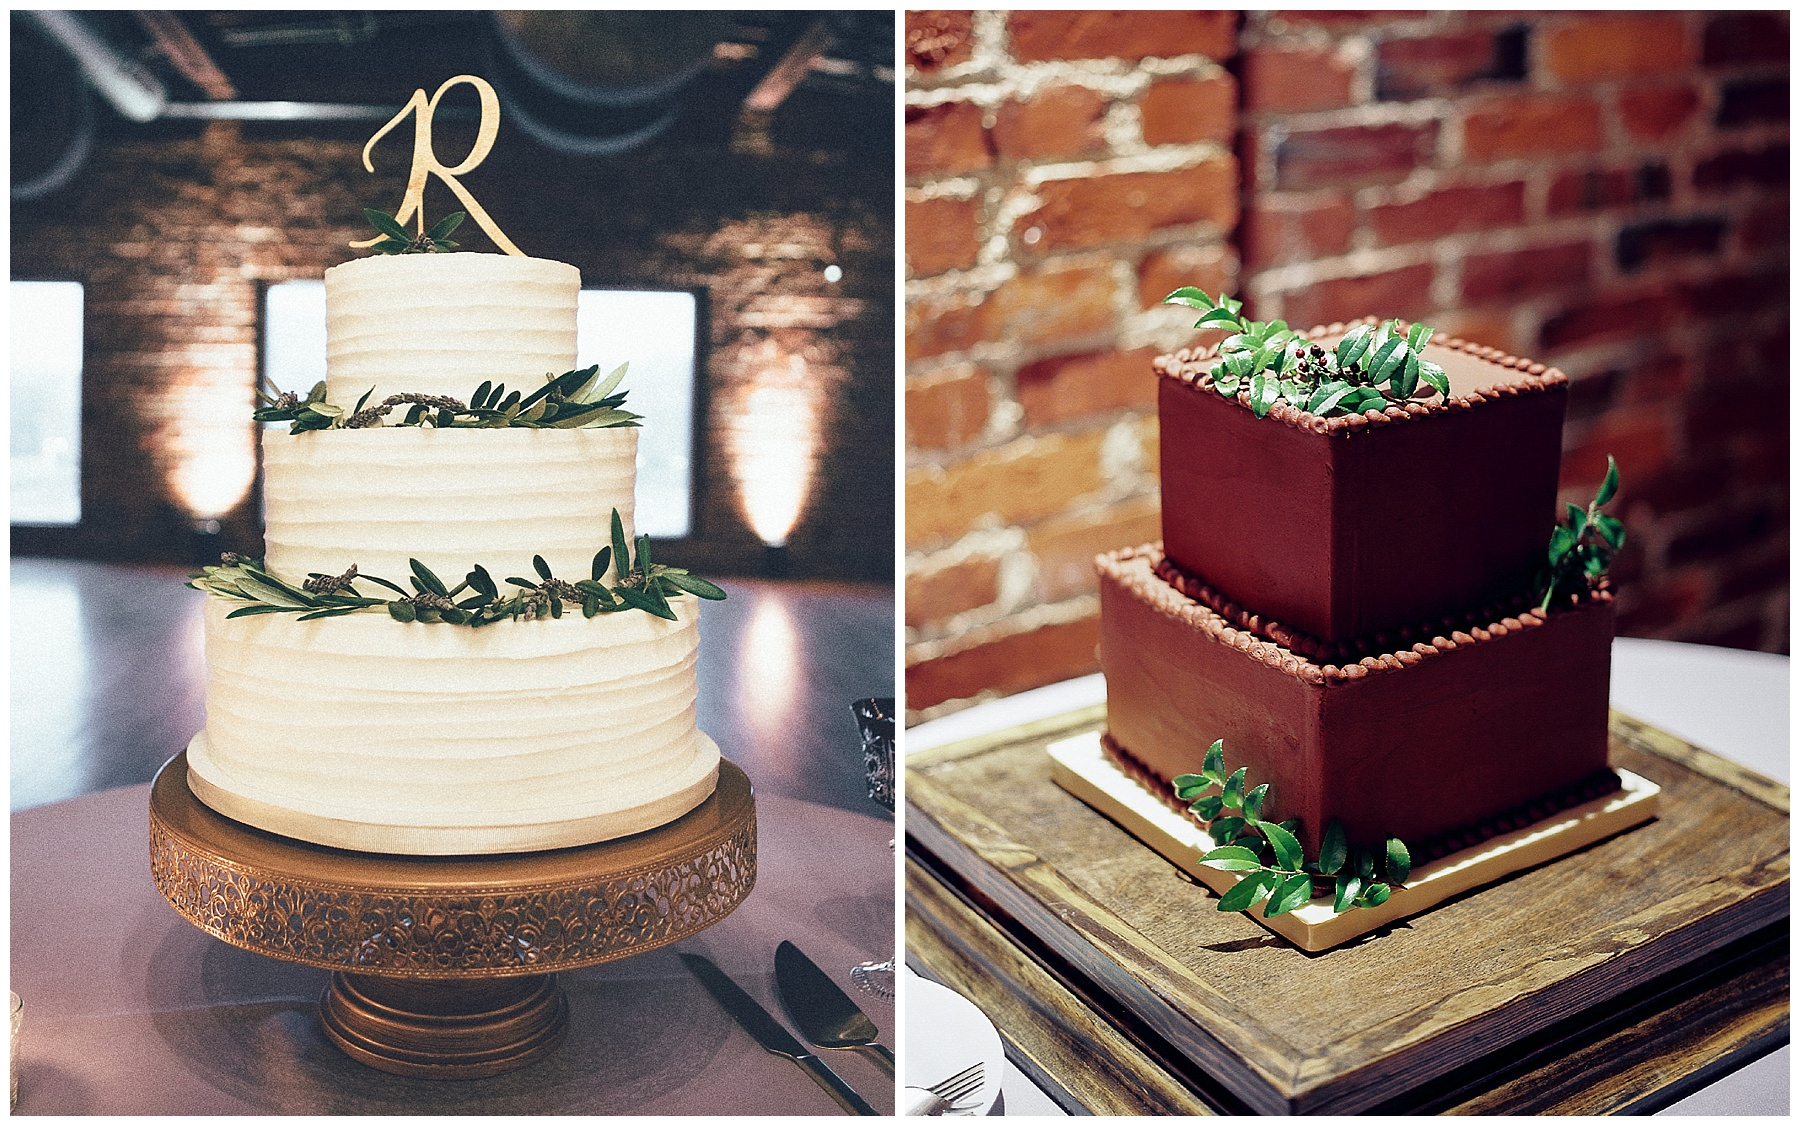 2018-01-23_0011 Emily & Marcus: A Cozy Nashville Wedding Blog Invision Events Weddings    invision_events, birmingham_al, auburn_al, alabama, atlanta_ga, atl, georgia, wedding_planner, wedding_designer, weddings, photography, wedding_planning